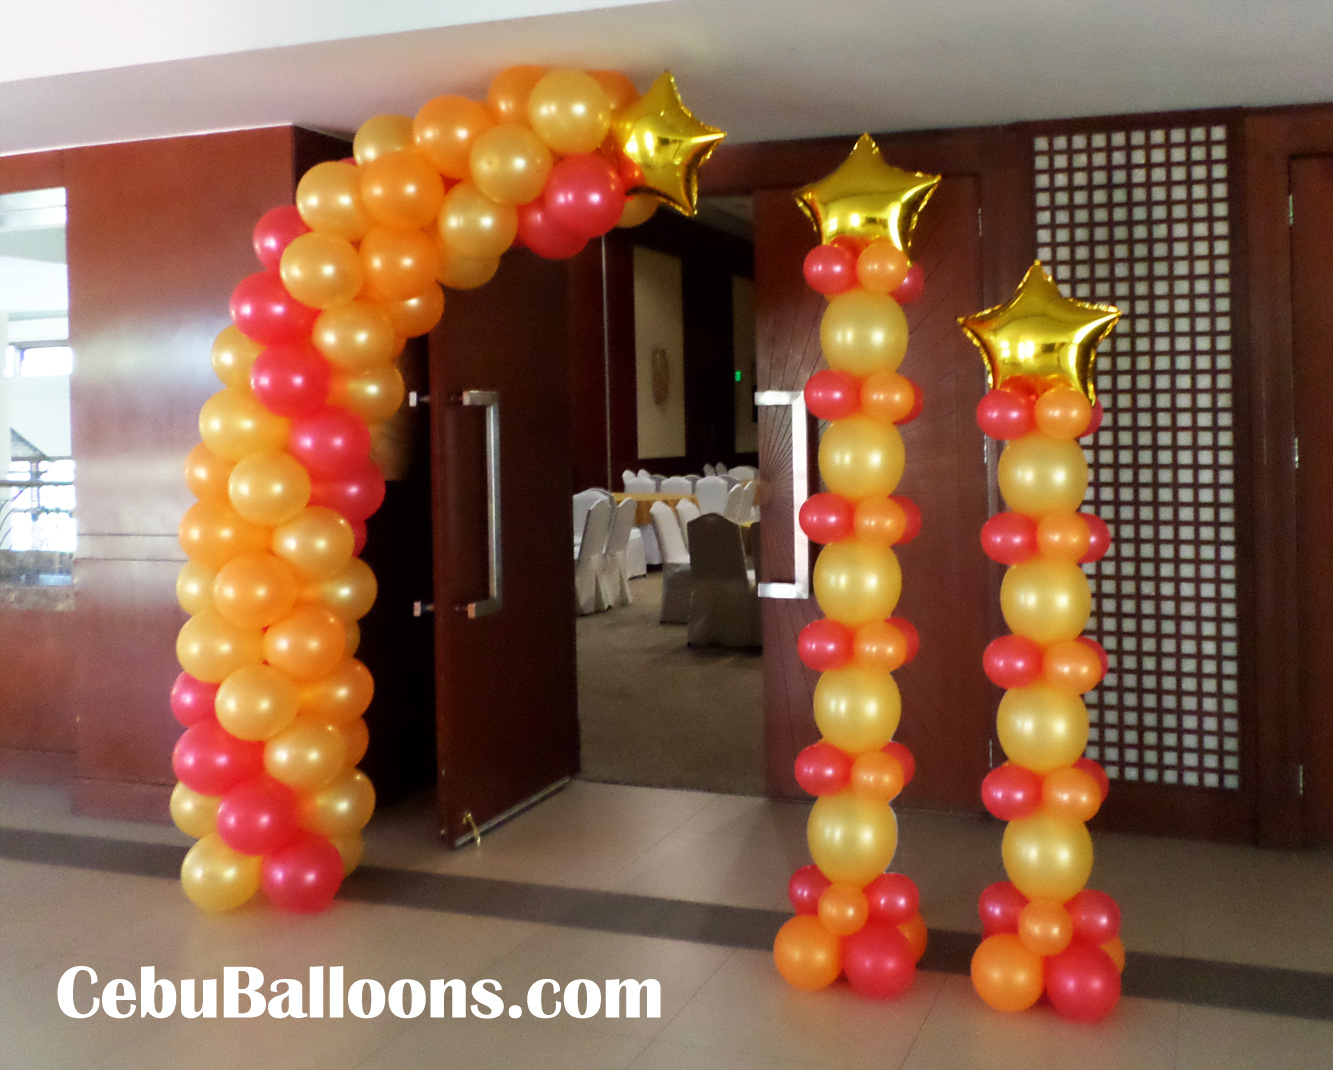 Balloon Decorations At The Entrance For A 75th Birthday Celebration City Sports Ayala